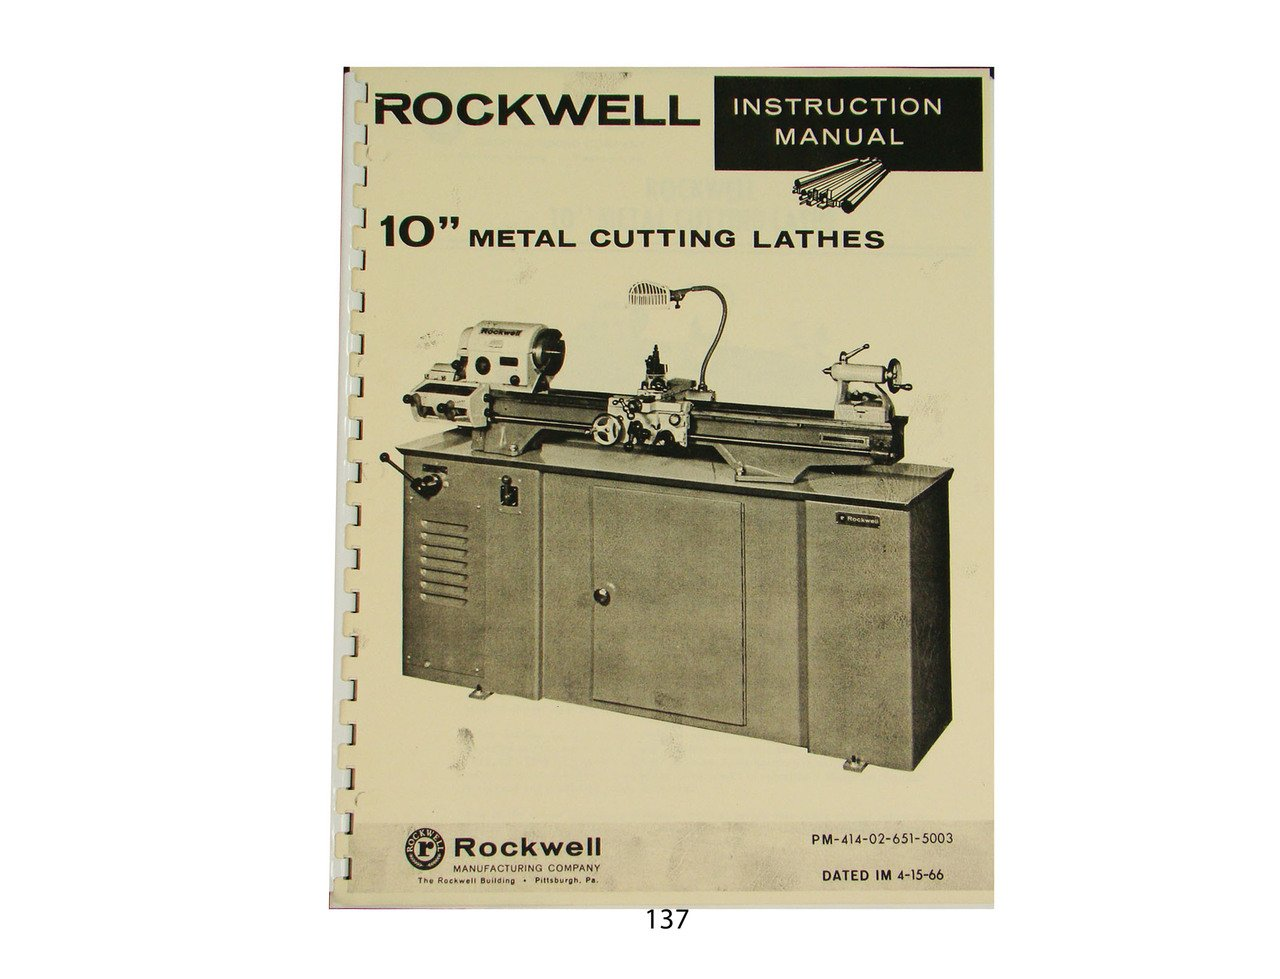 Rockwell 10 inch metal lathe instruction parts manual rockwell rockwell 10 inch metal lathe instruction parts manual rockwell amazon books fandeluxe